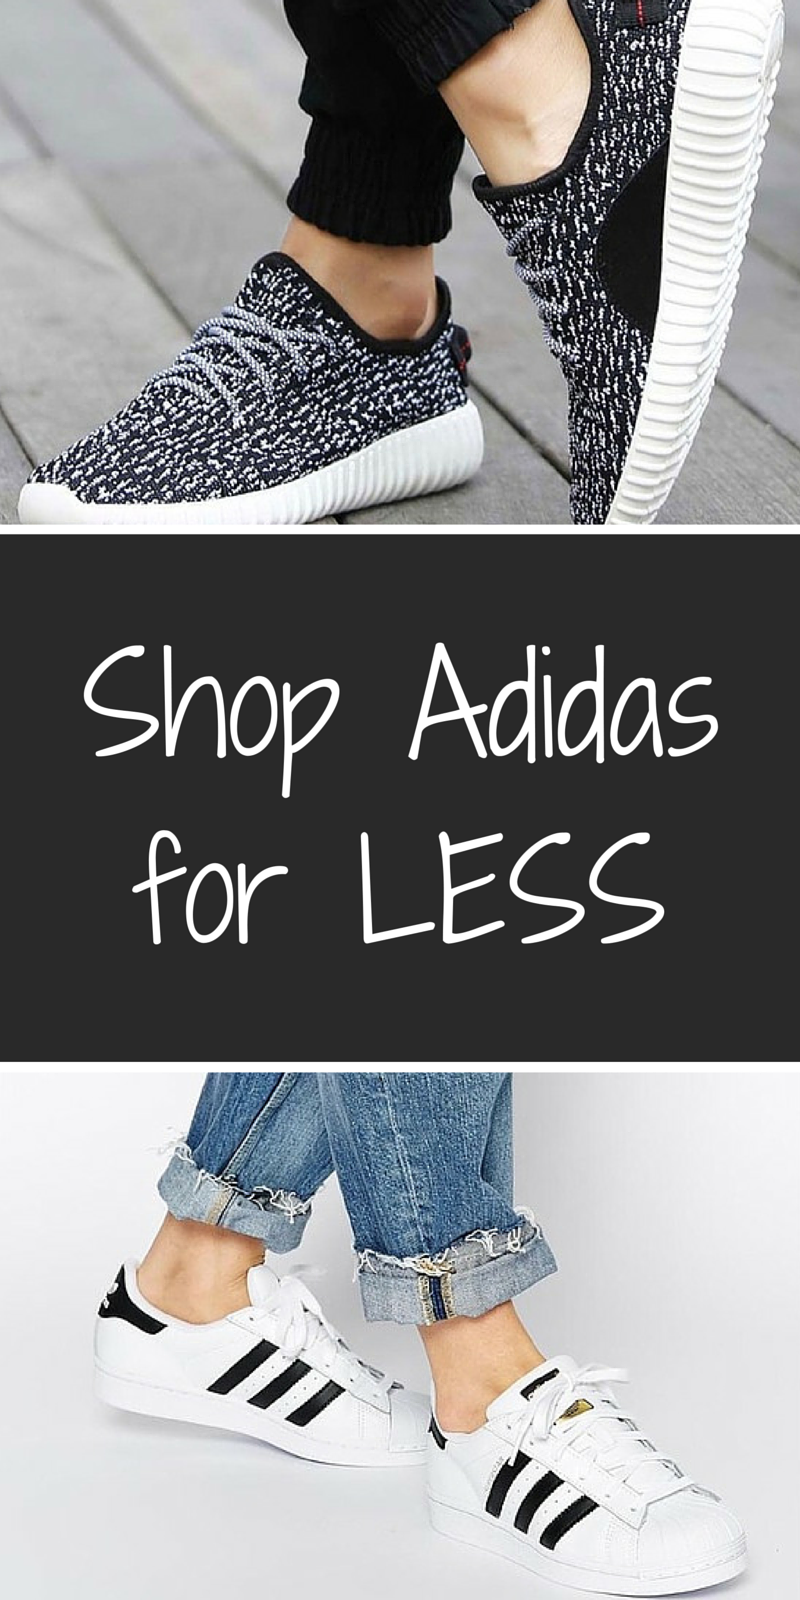 Sale Happening Now! Shop the latest Adidas shoes for up to 70% off retail!  Click to install the FREE app now. 9dd07a1874